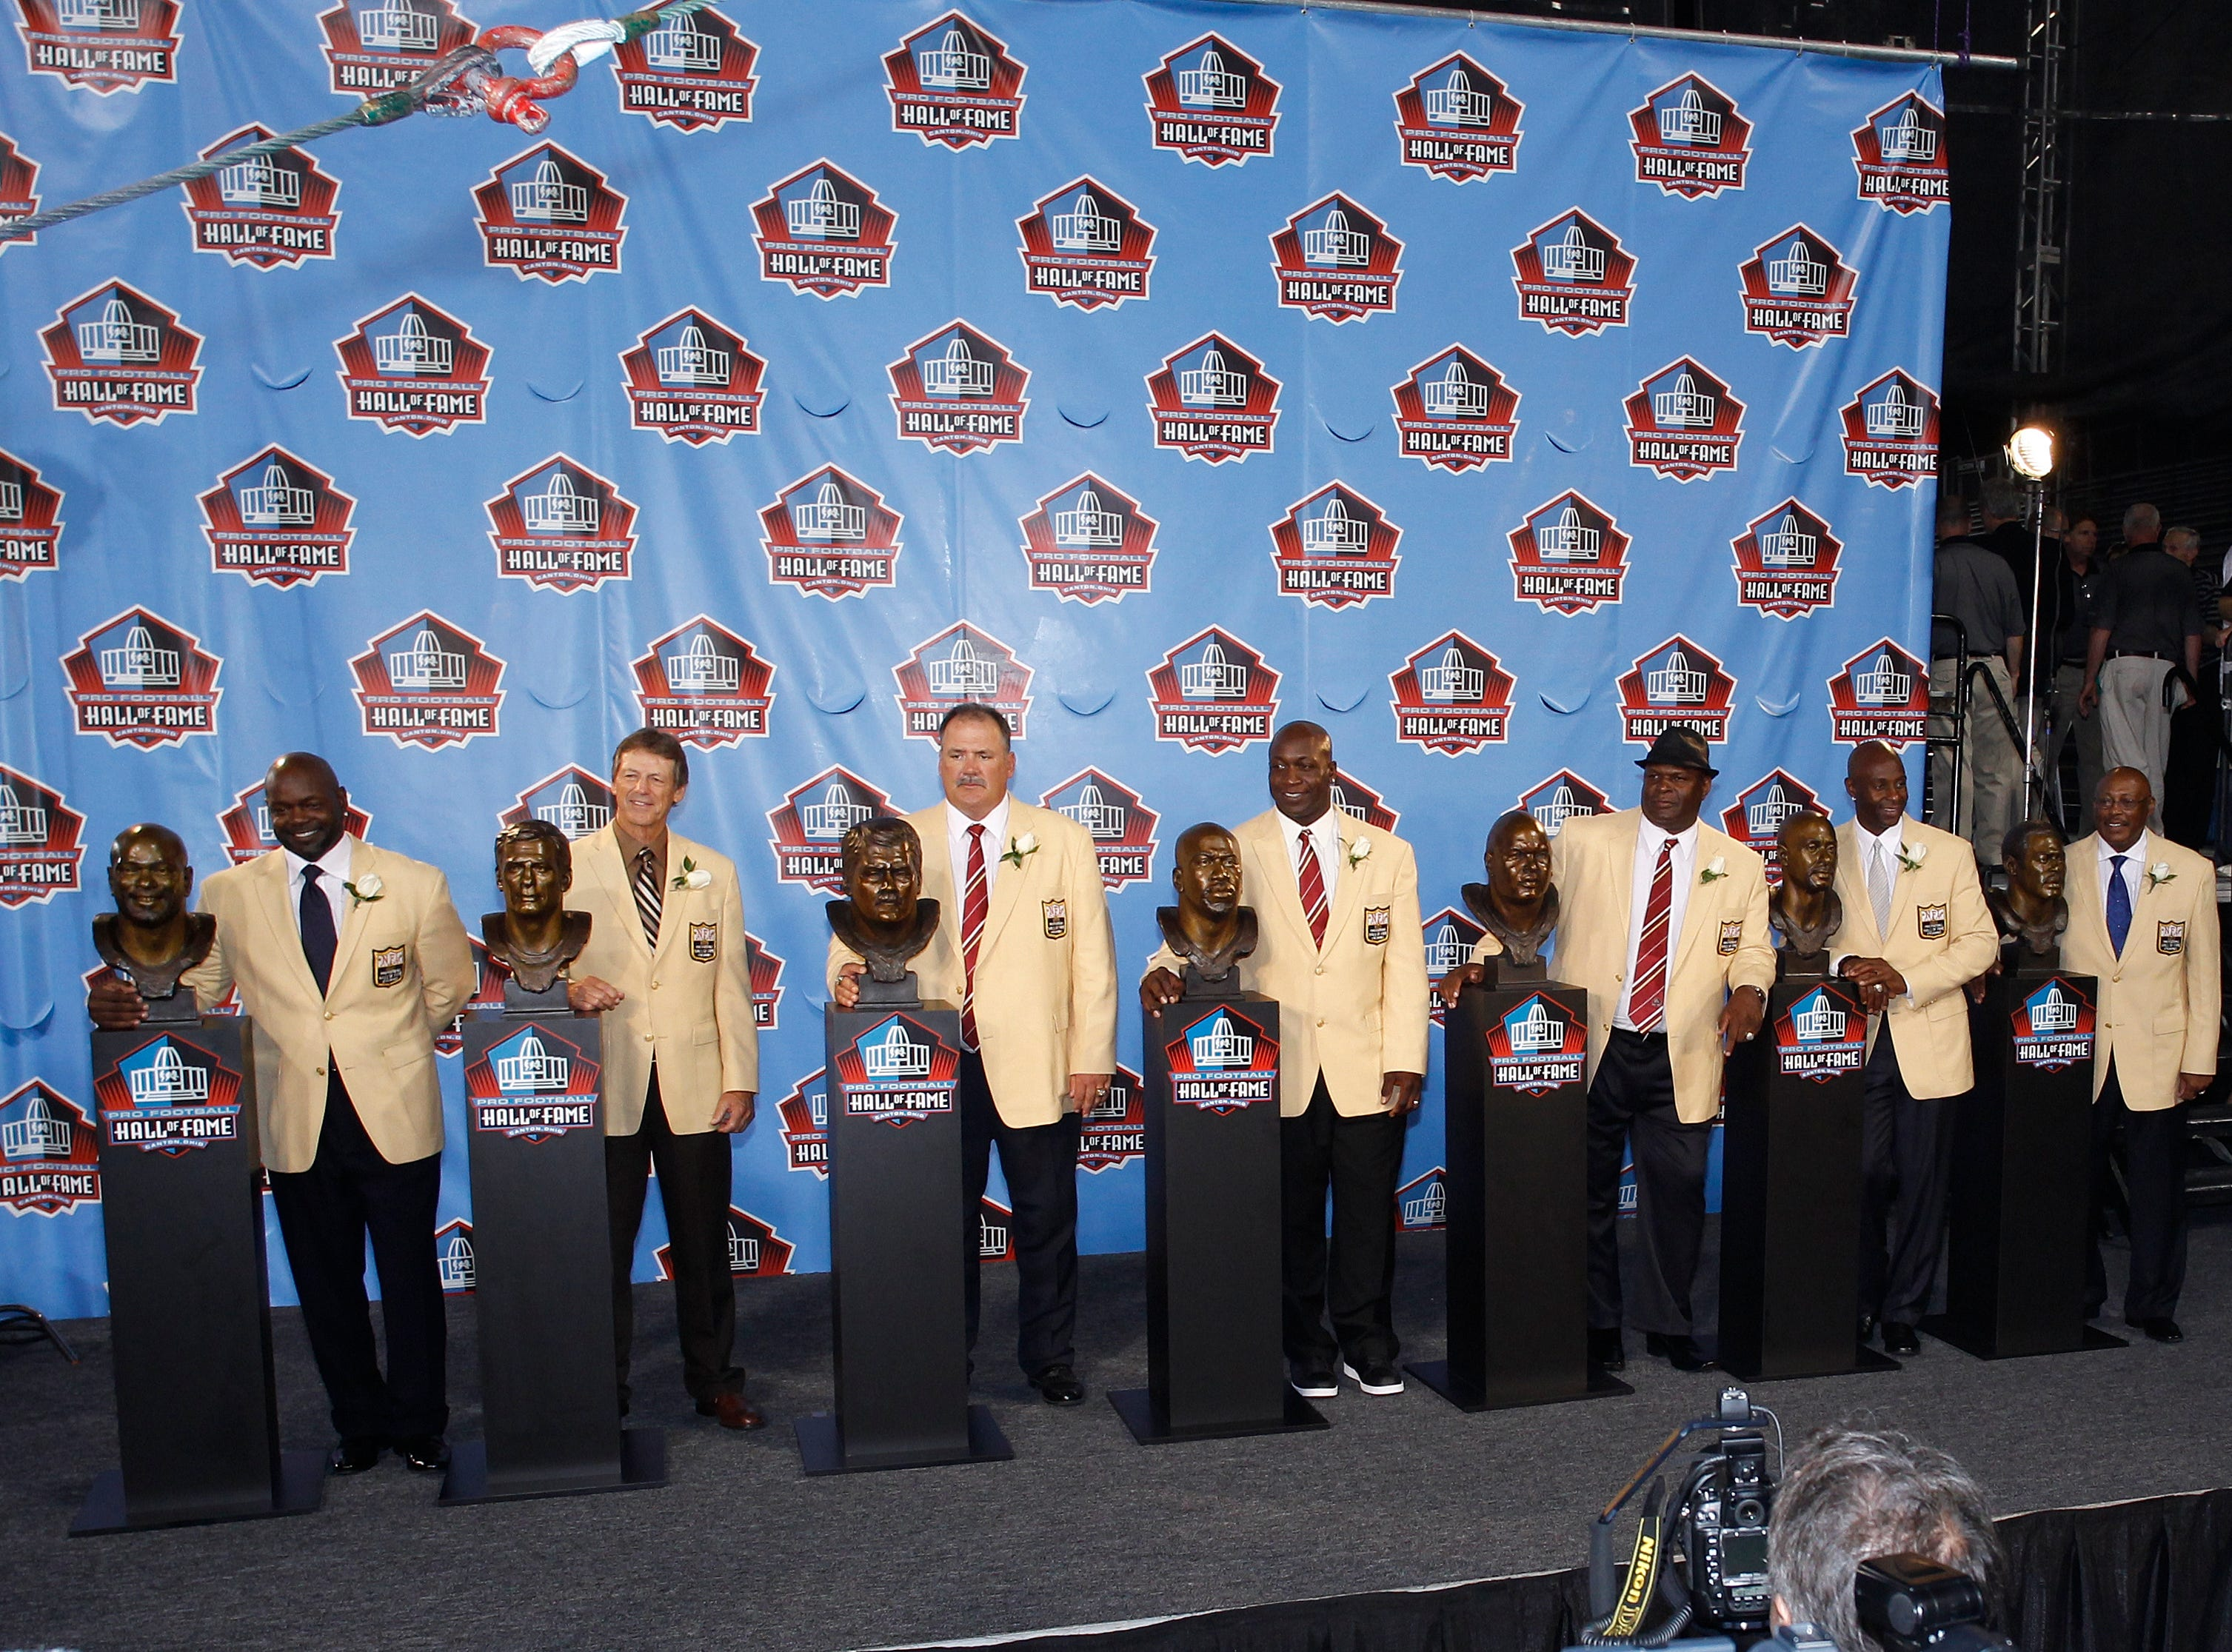 CANTON, OH - AUGUST 7: The Class of 2010 (from left, Emmitt Smith, Dick LeBeau, Russ Grimm, John Randle, Rickey Jackson, Jerry Rice and Floyd Little) pose with their busts following the Pro Football Hall of Fame Enshrinement Ceremony at the Pro Football Hall of Fame Field at Fawcett Stadium on August 7, 2010 in Canton, Ohio. (Photo by Joe Robbins/Getty Images)